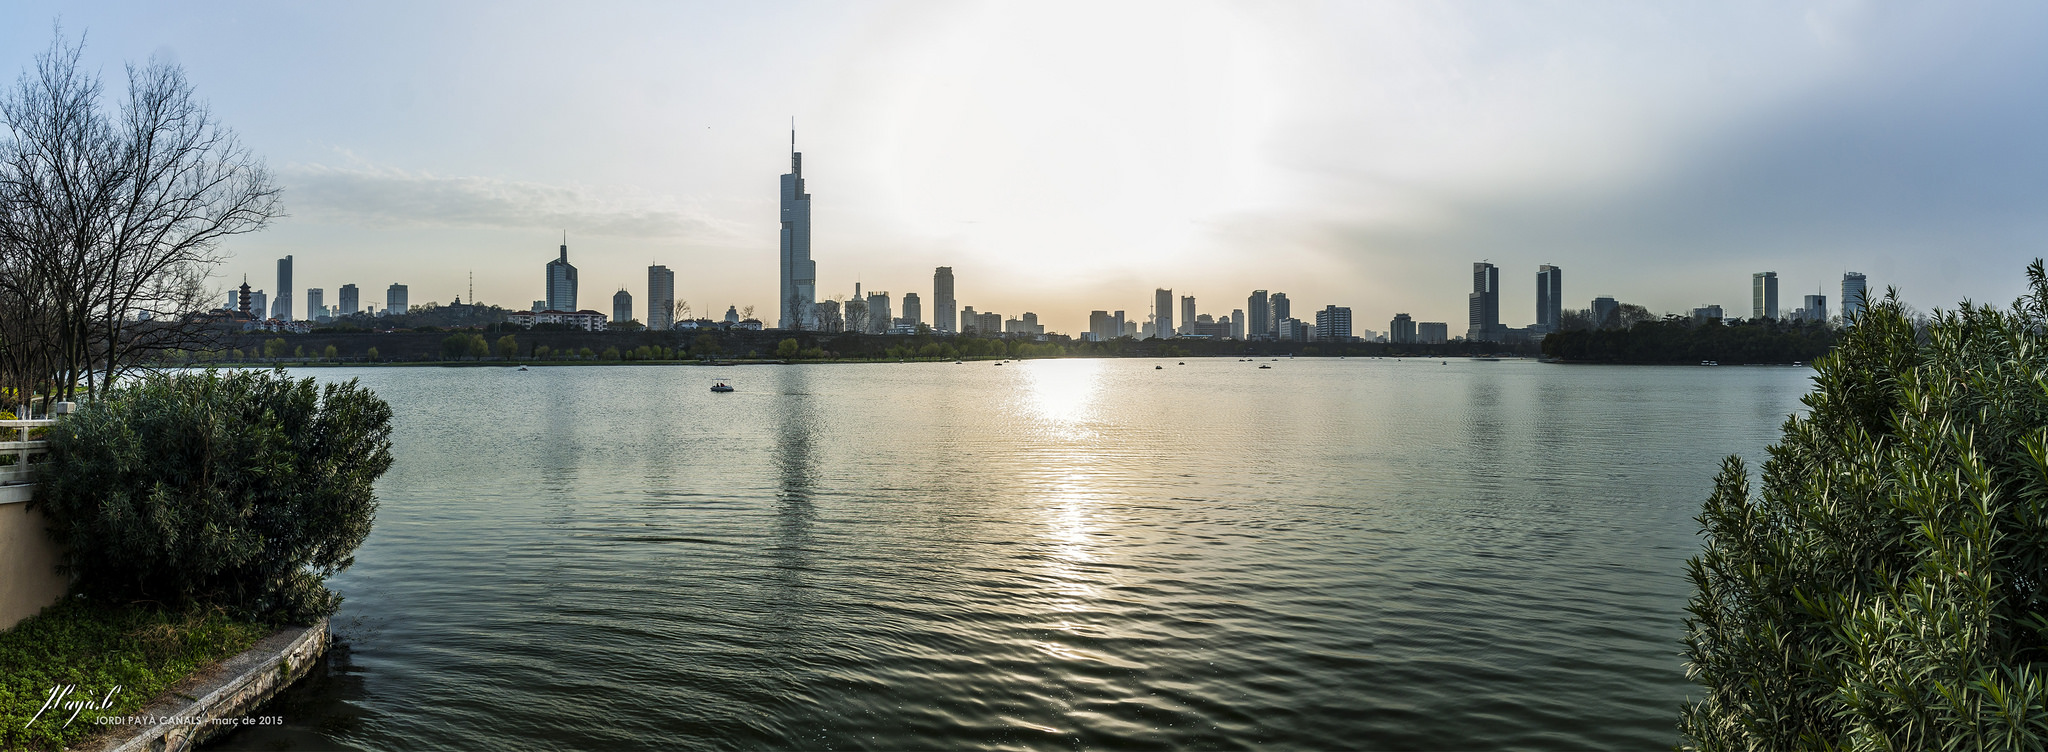 yet another skyline of Nanjing